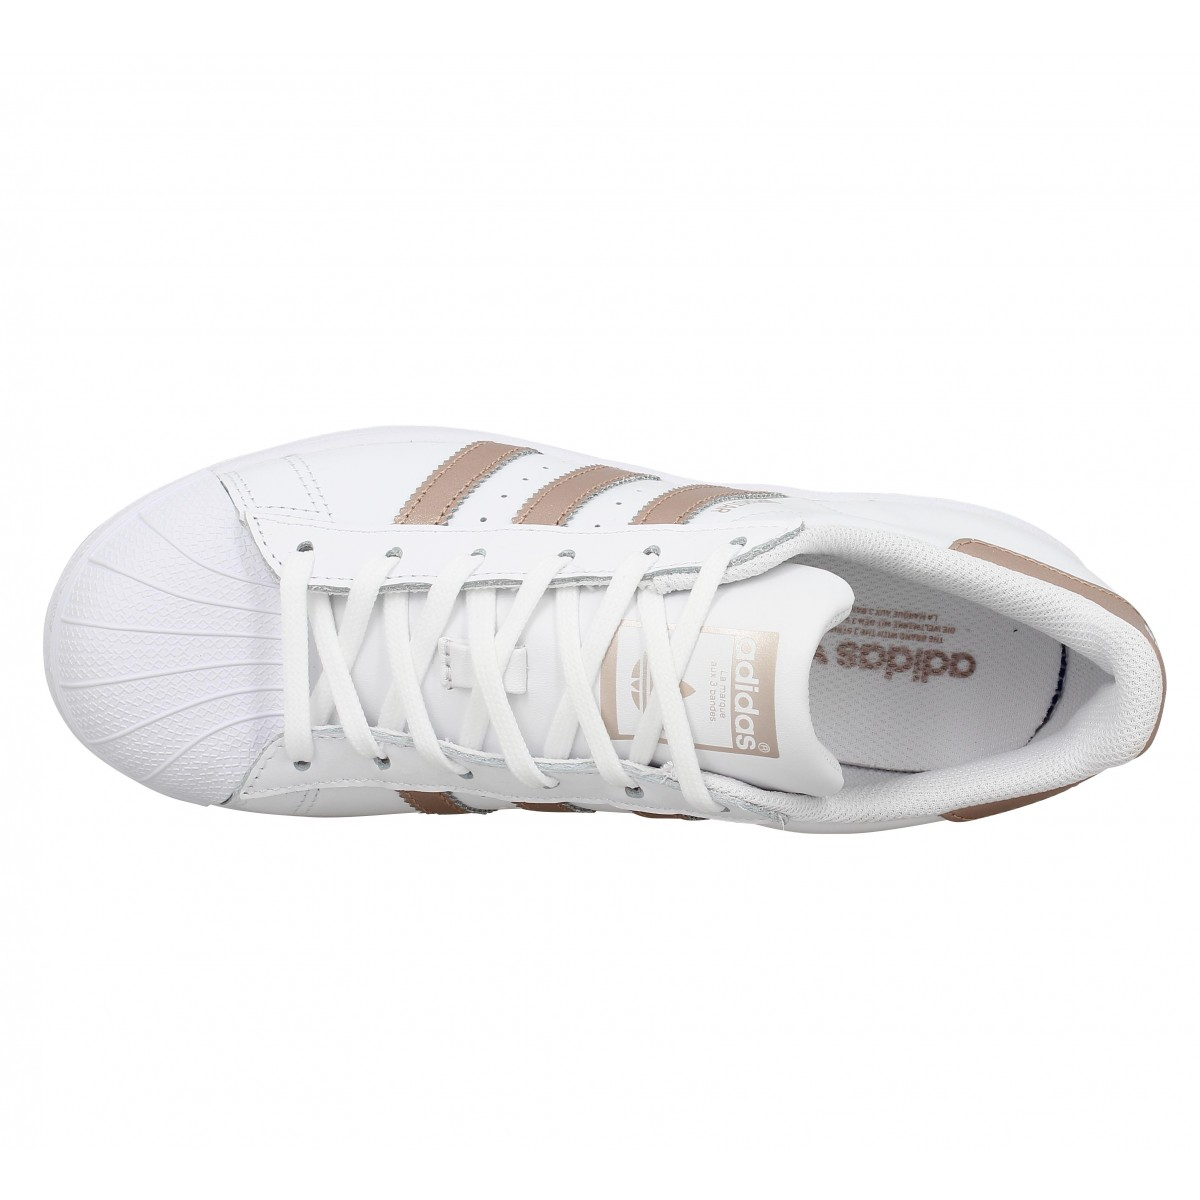 adidas superstar rose gold femme